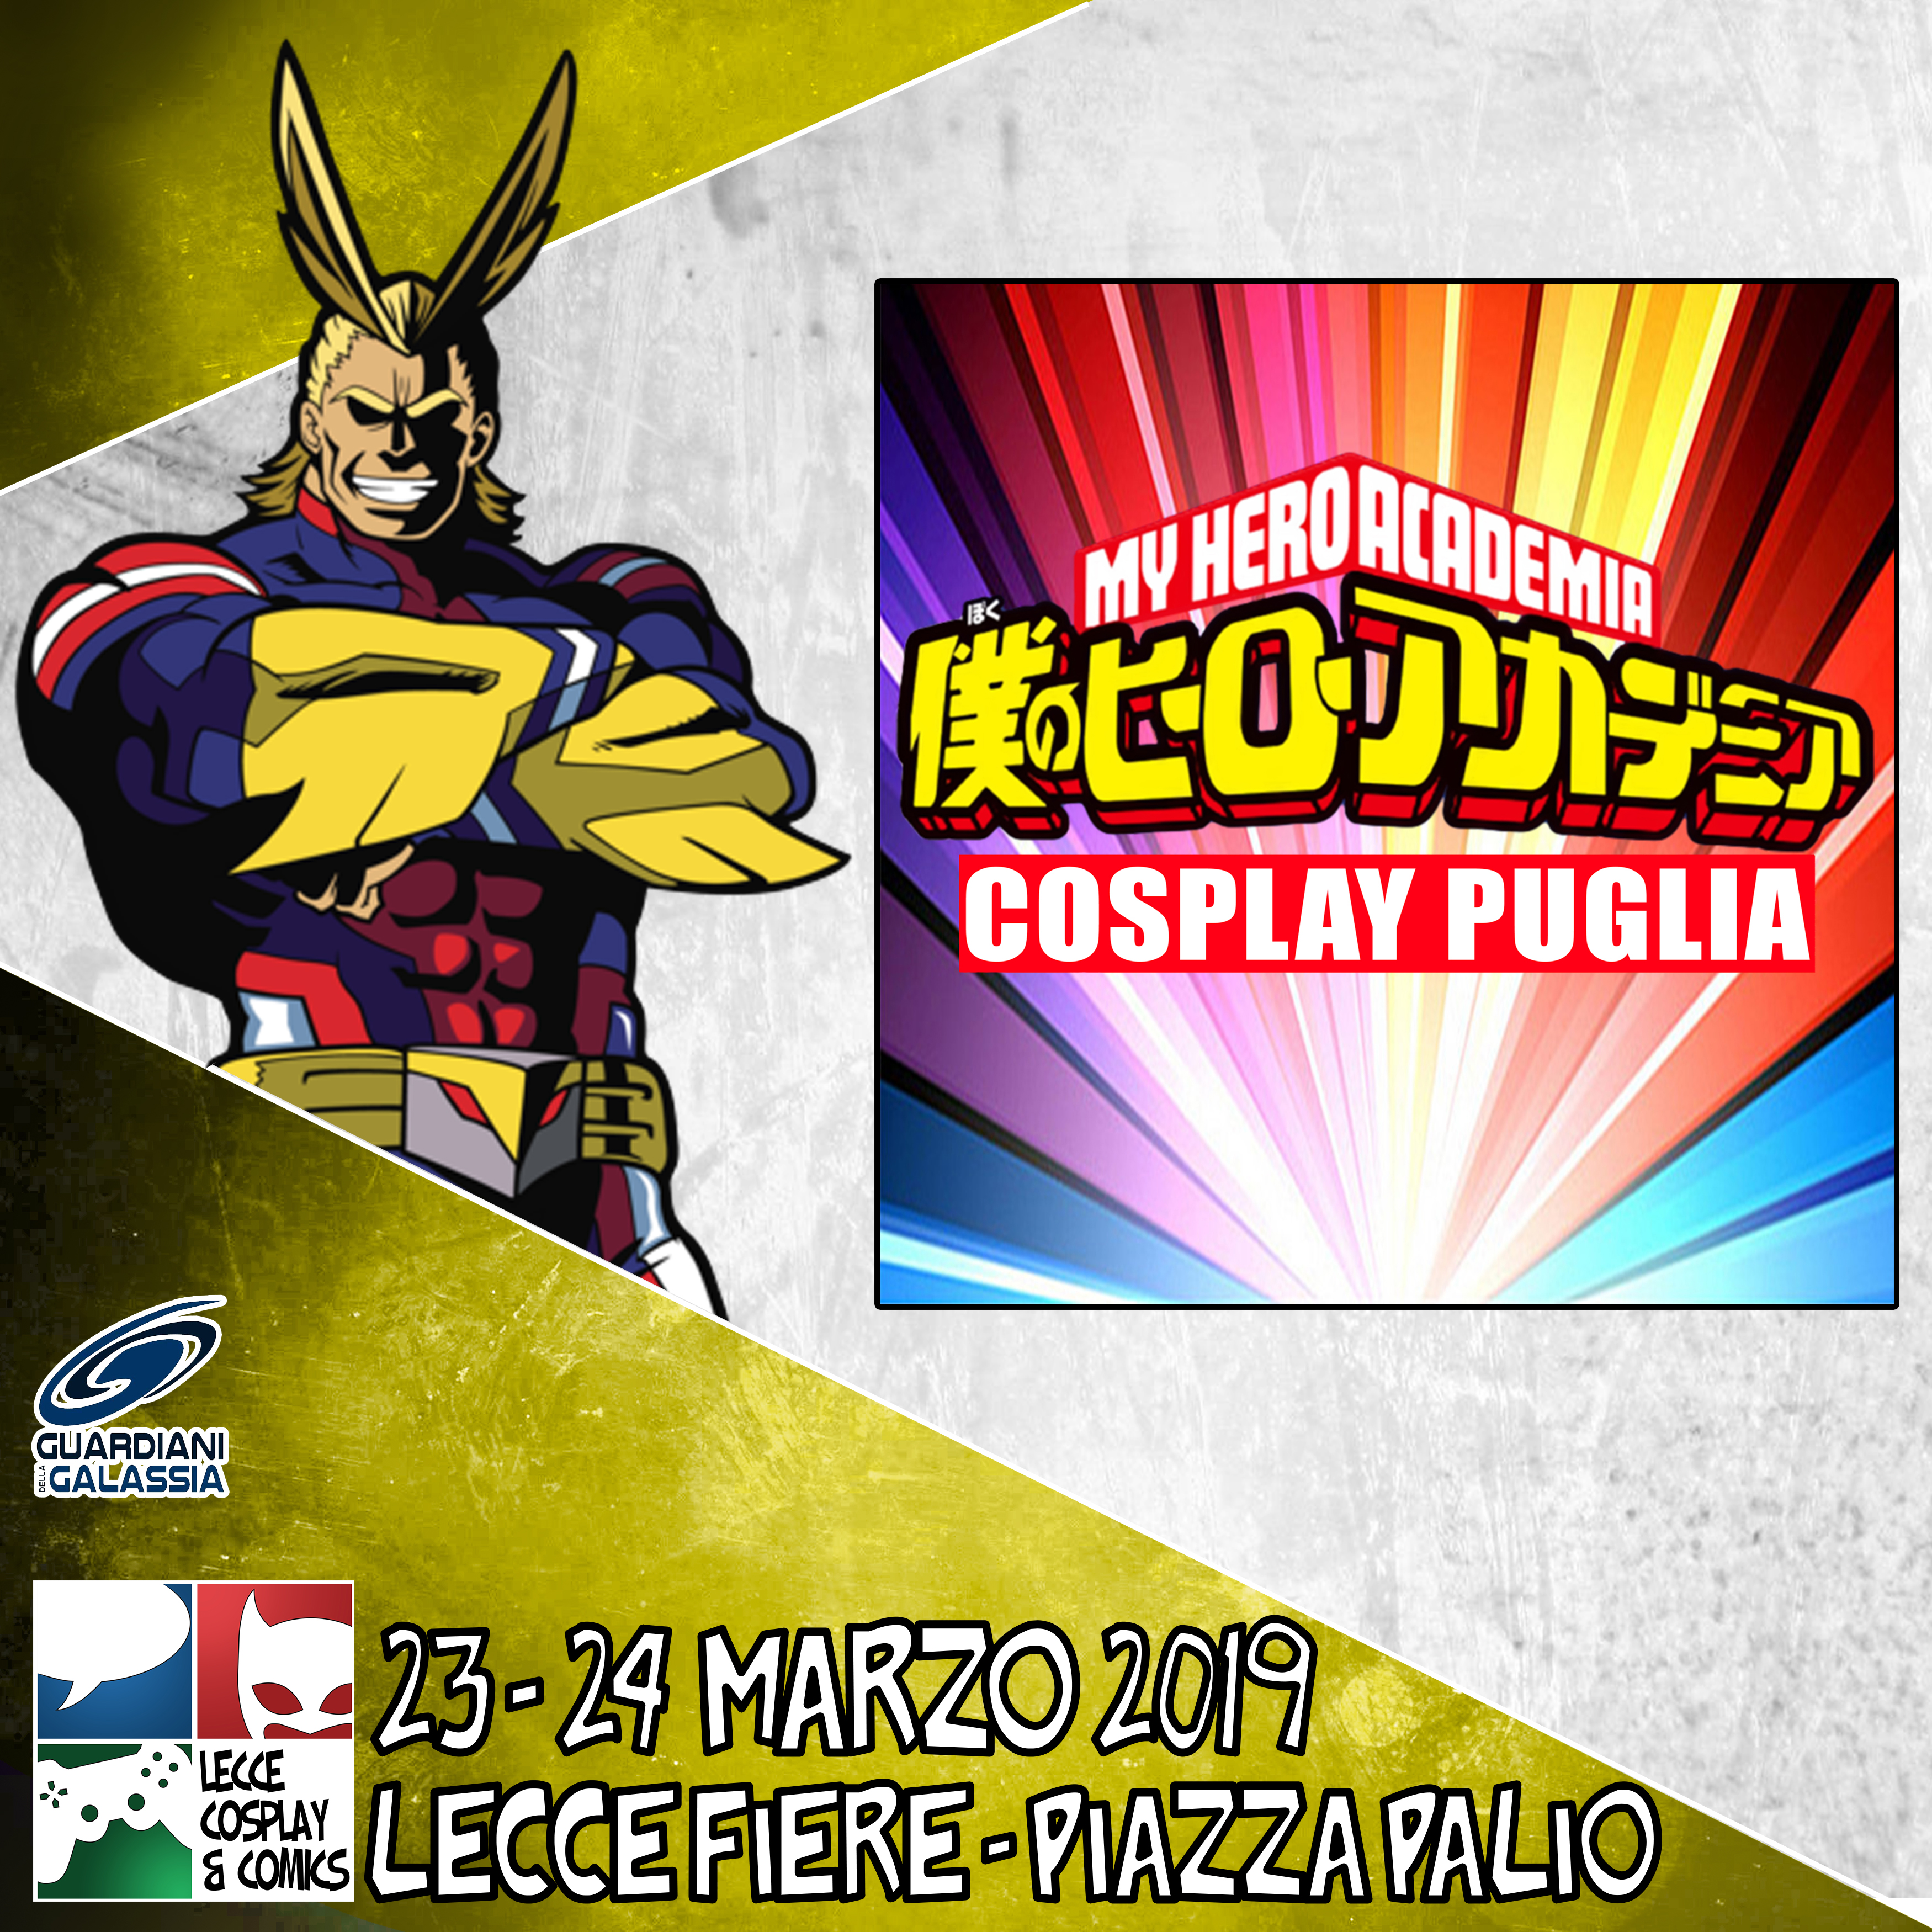 My Hero Academia Cosplay  Puglia